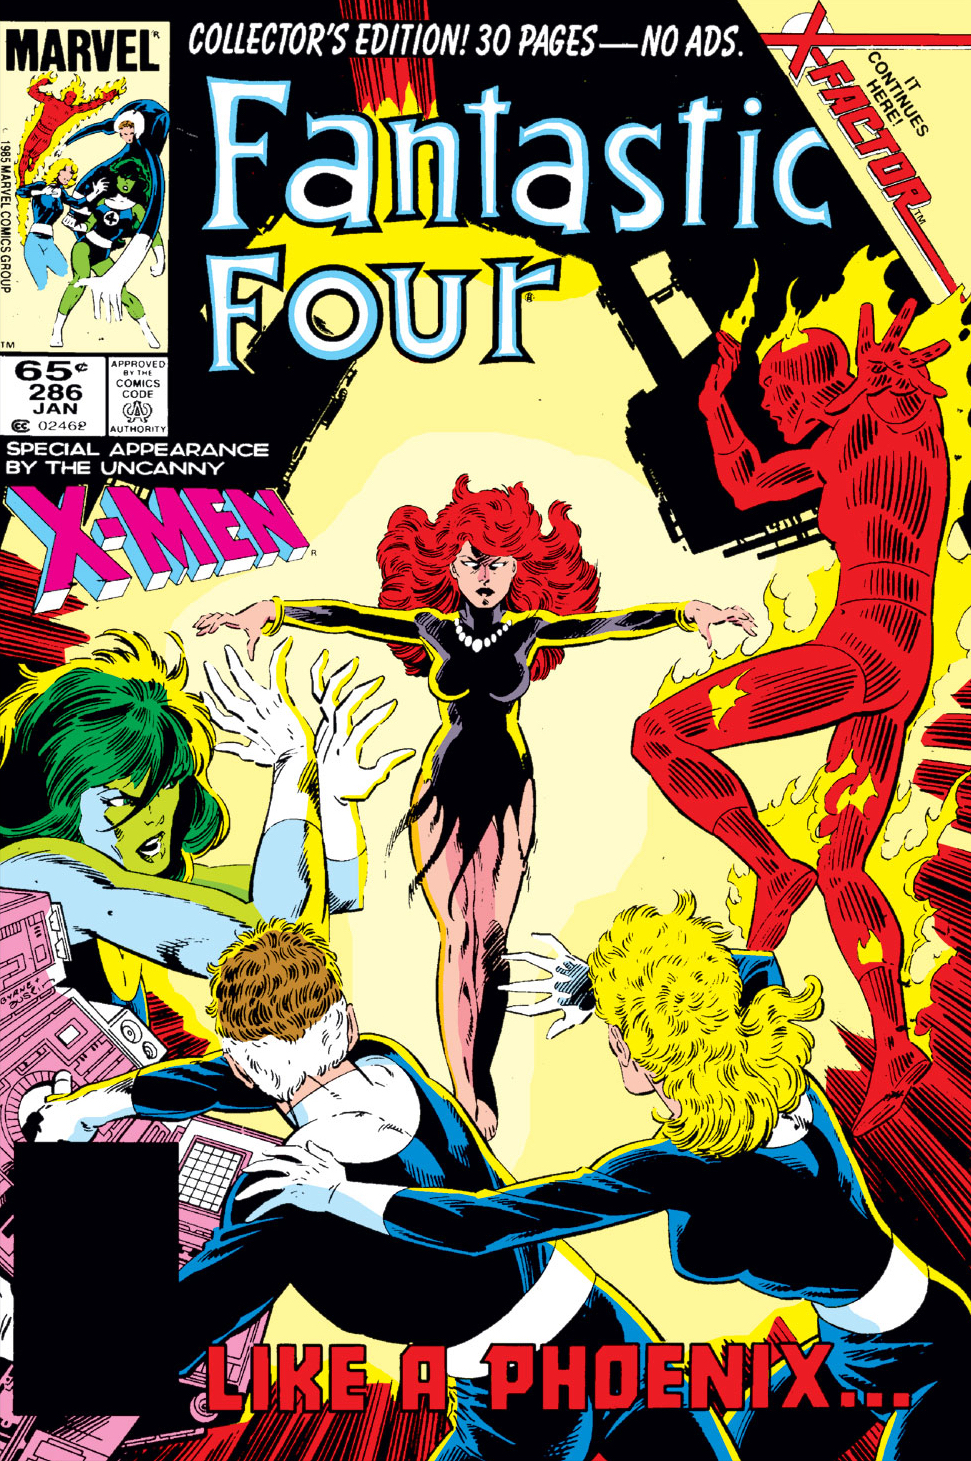 Jean Grey in tattered dress rising in front of Fantastic Four, with title at bottom 'Like a Phoenix...